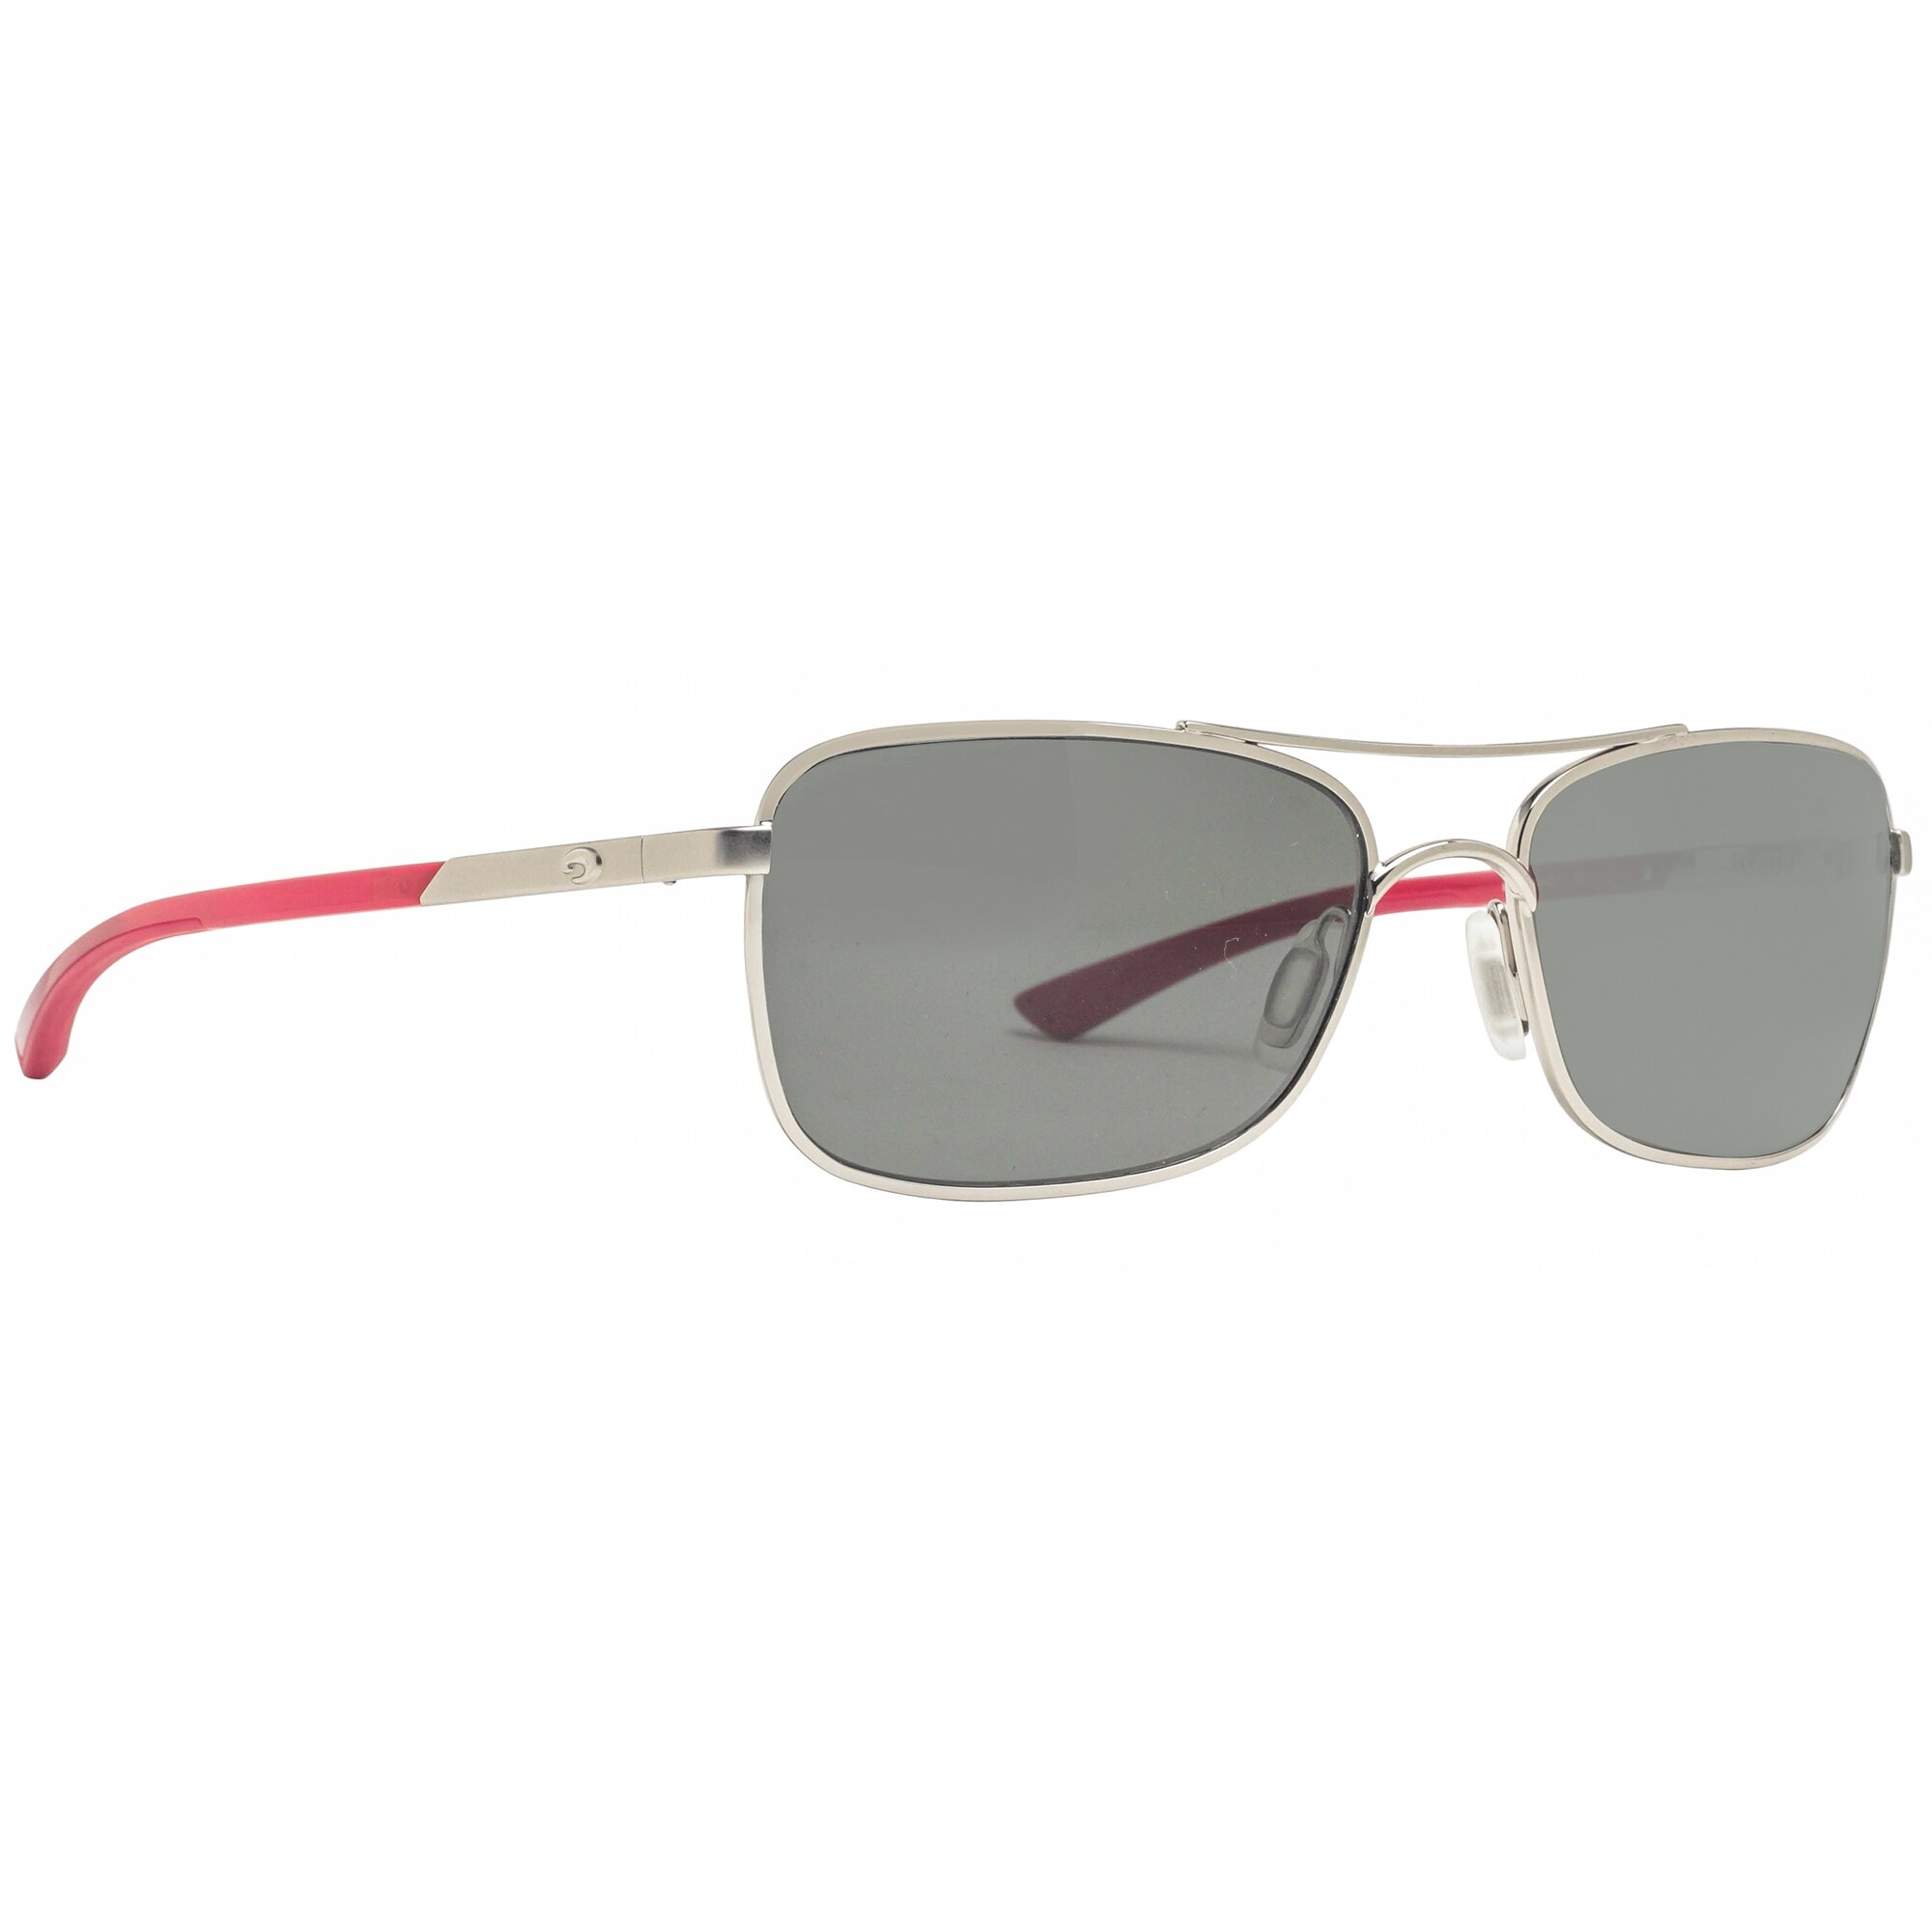 1059ae264d8 Shop Costa Del Mar Palapa AP83 OGGLP Palladium Red Gray Polarized 580G  Sunglasses - 57mm-18mm-130mm - Free Shipping Today - Overstock - 21154037